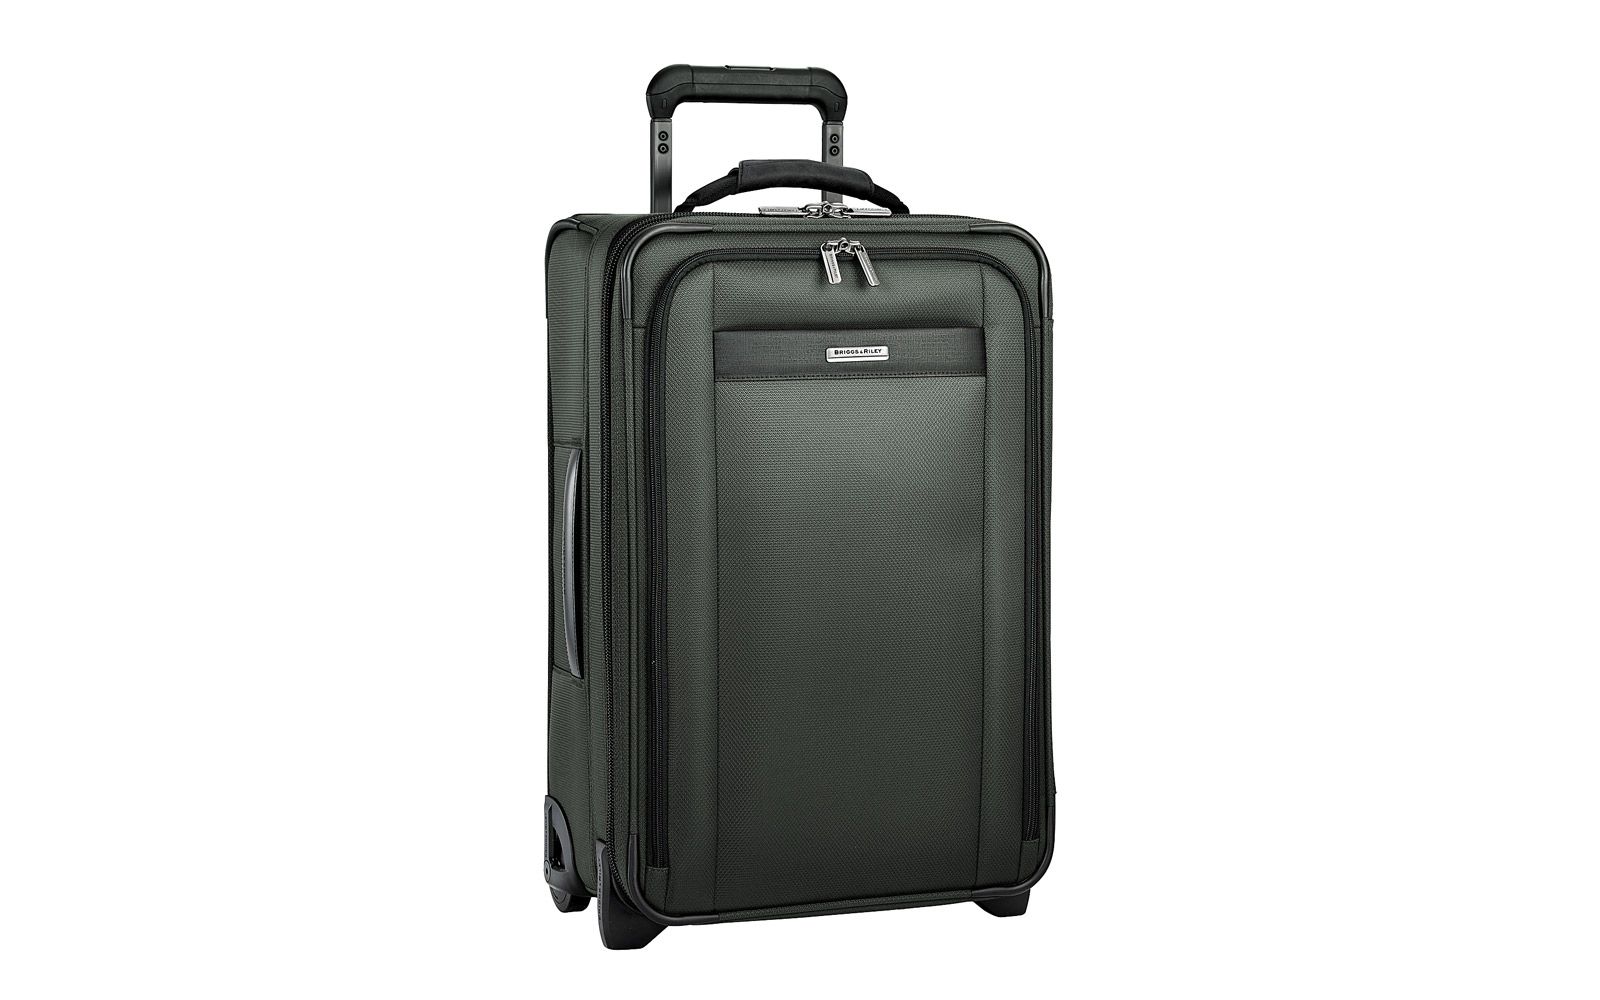 delta carry-on luggage size